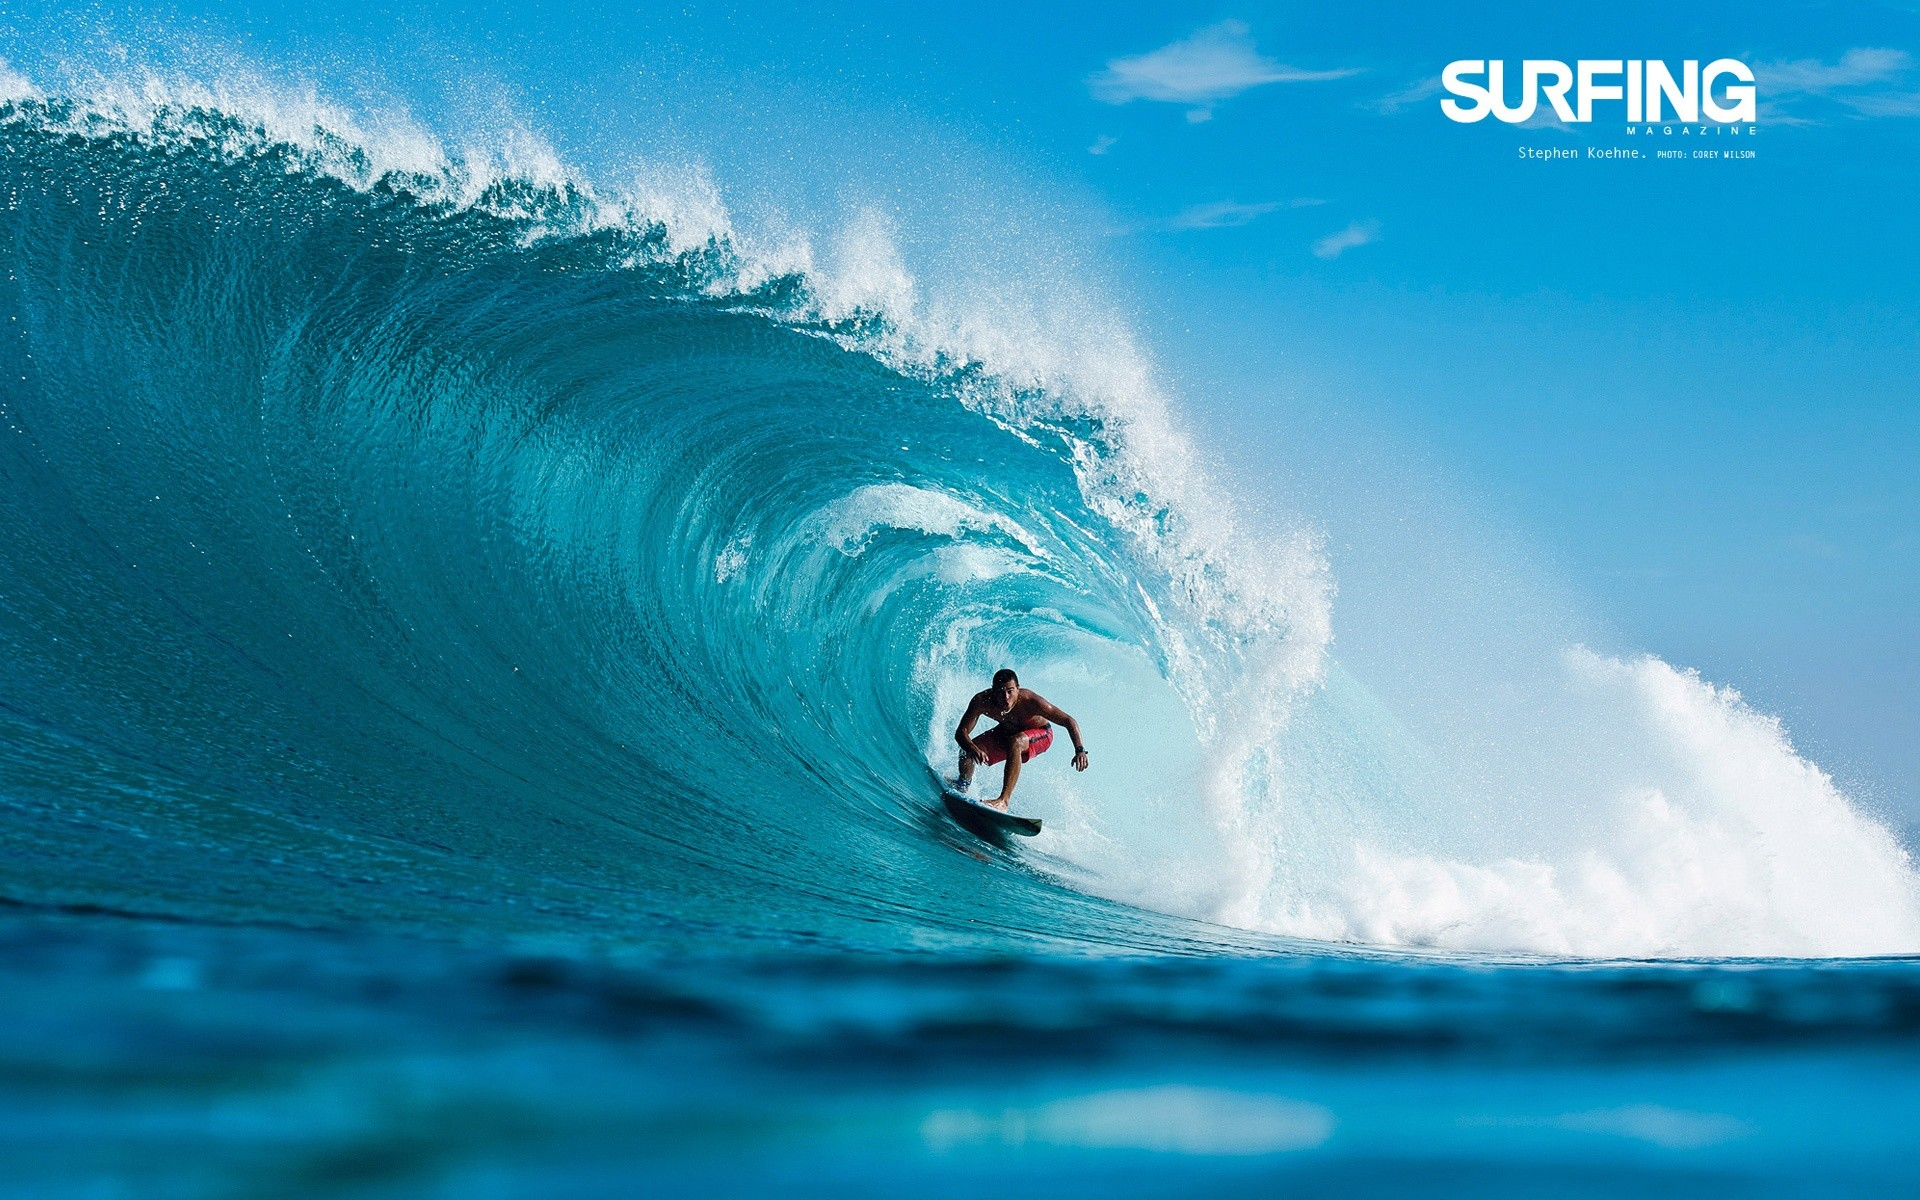 Download Wallpaper Surfing In Teahupoo Tahiti | Apps Directories